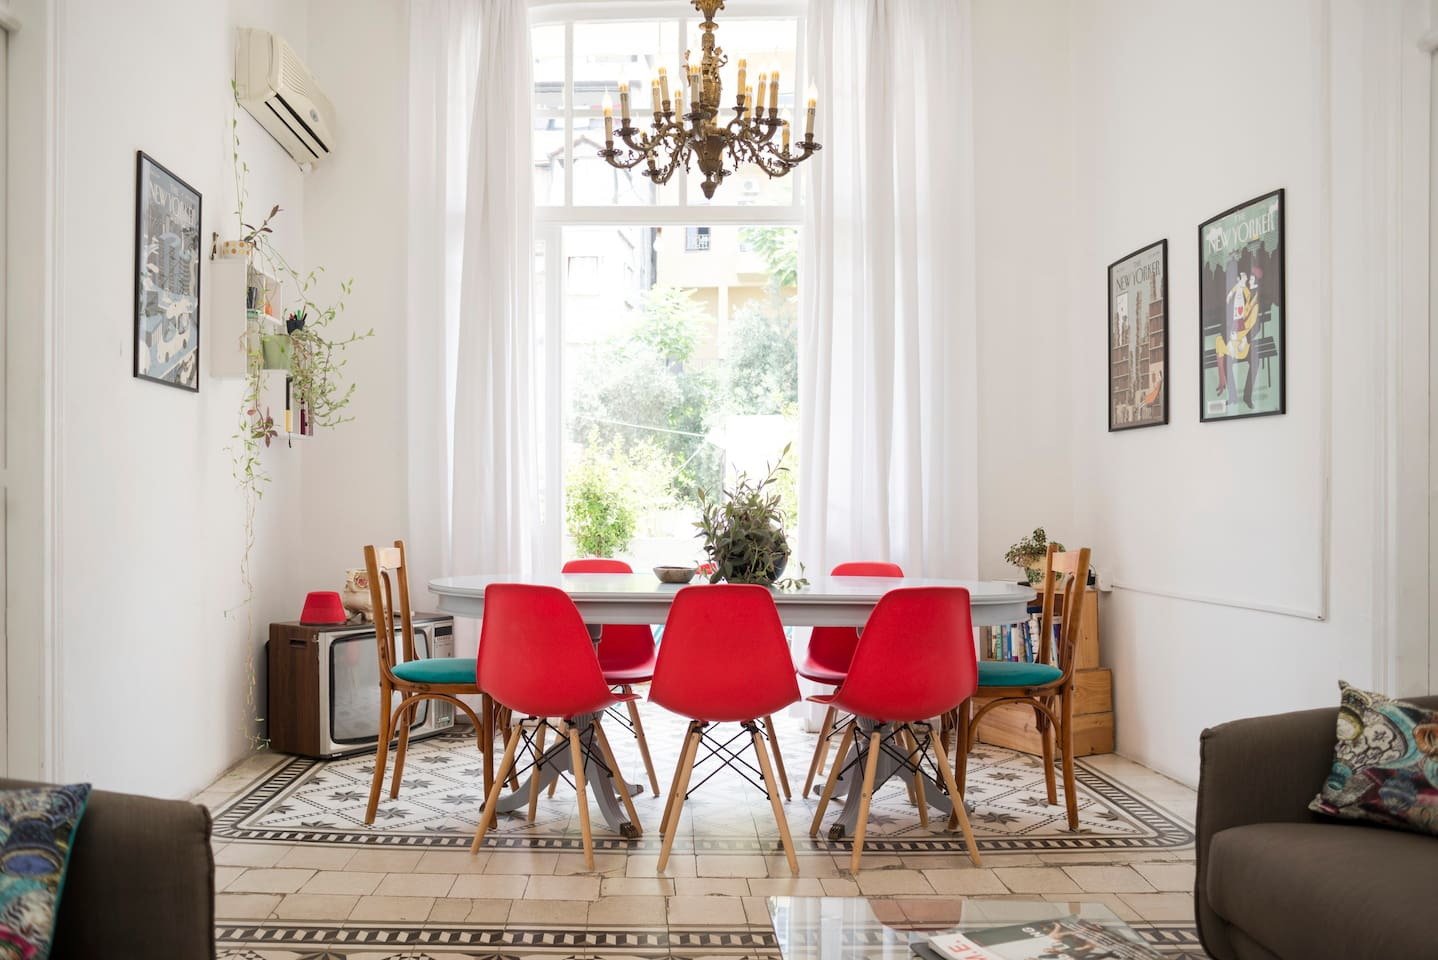 The apartment's high ceilings, large windows and tiled floors are typical of traditional Lebanese houses. The large dining table in the living room is perfect for dinner parties, while the balcony overlooking the cute café below is ideal for relaxing and getting some fresh air.